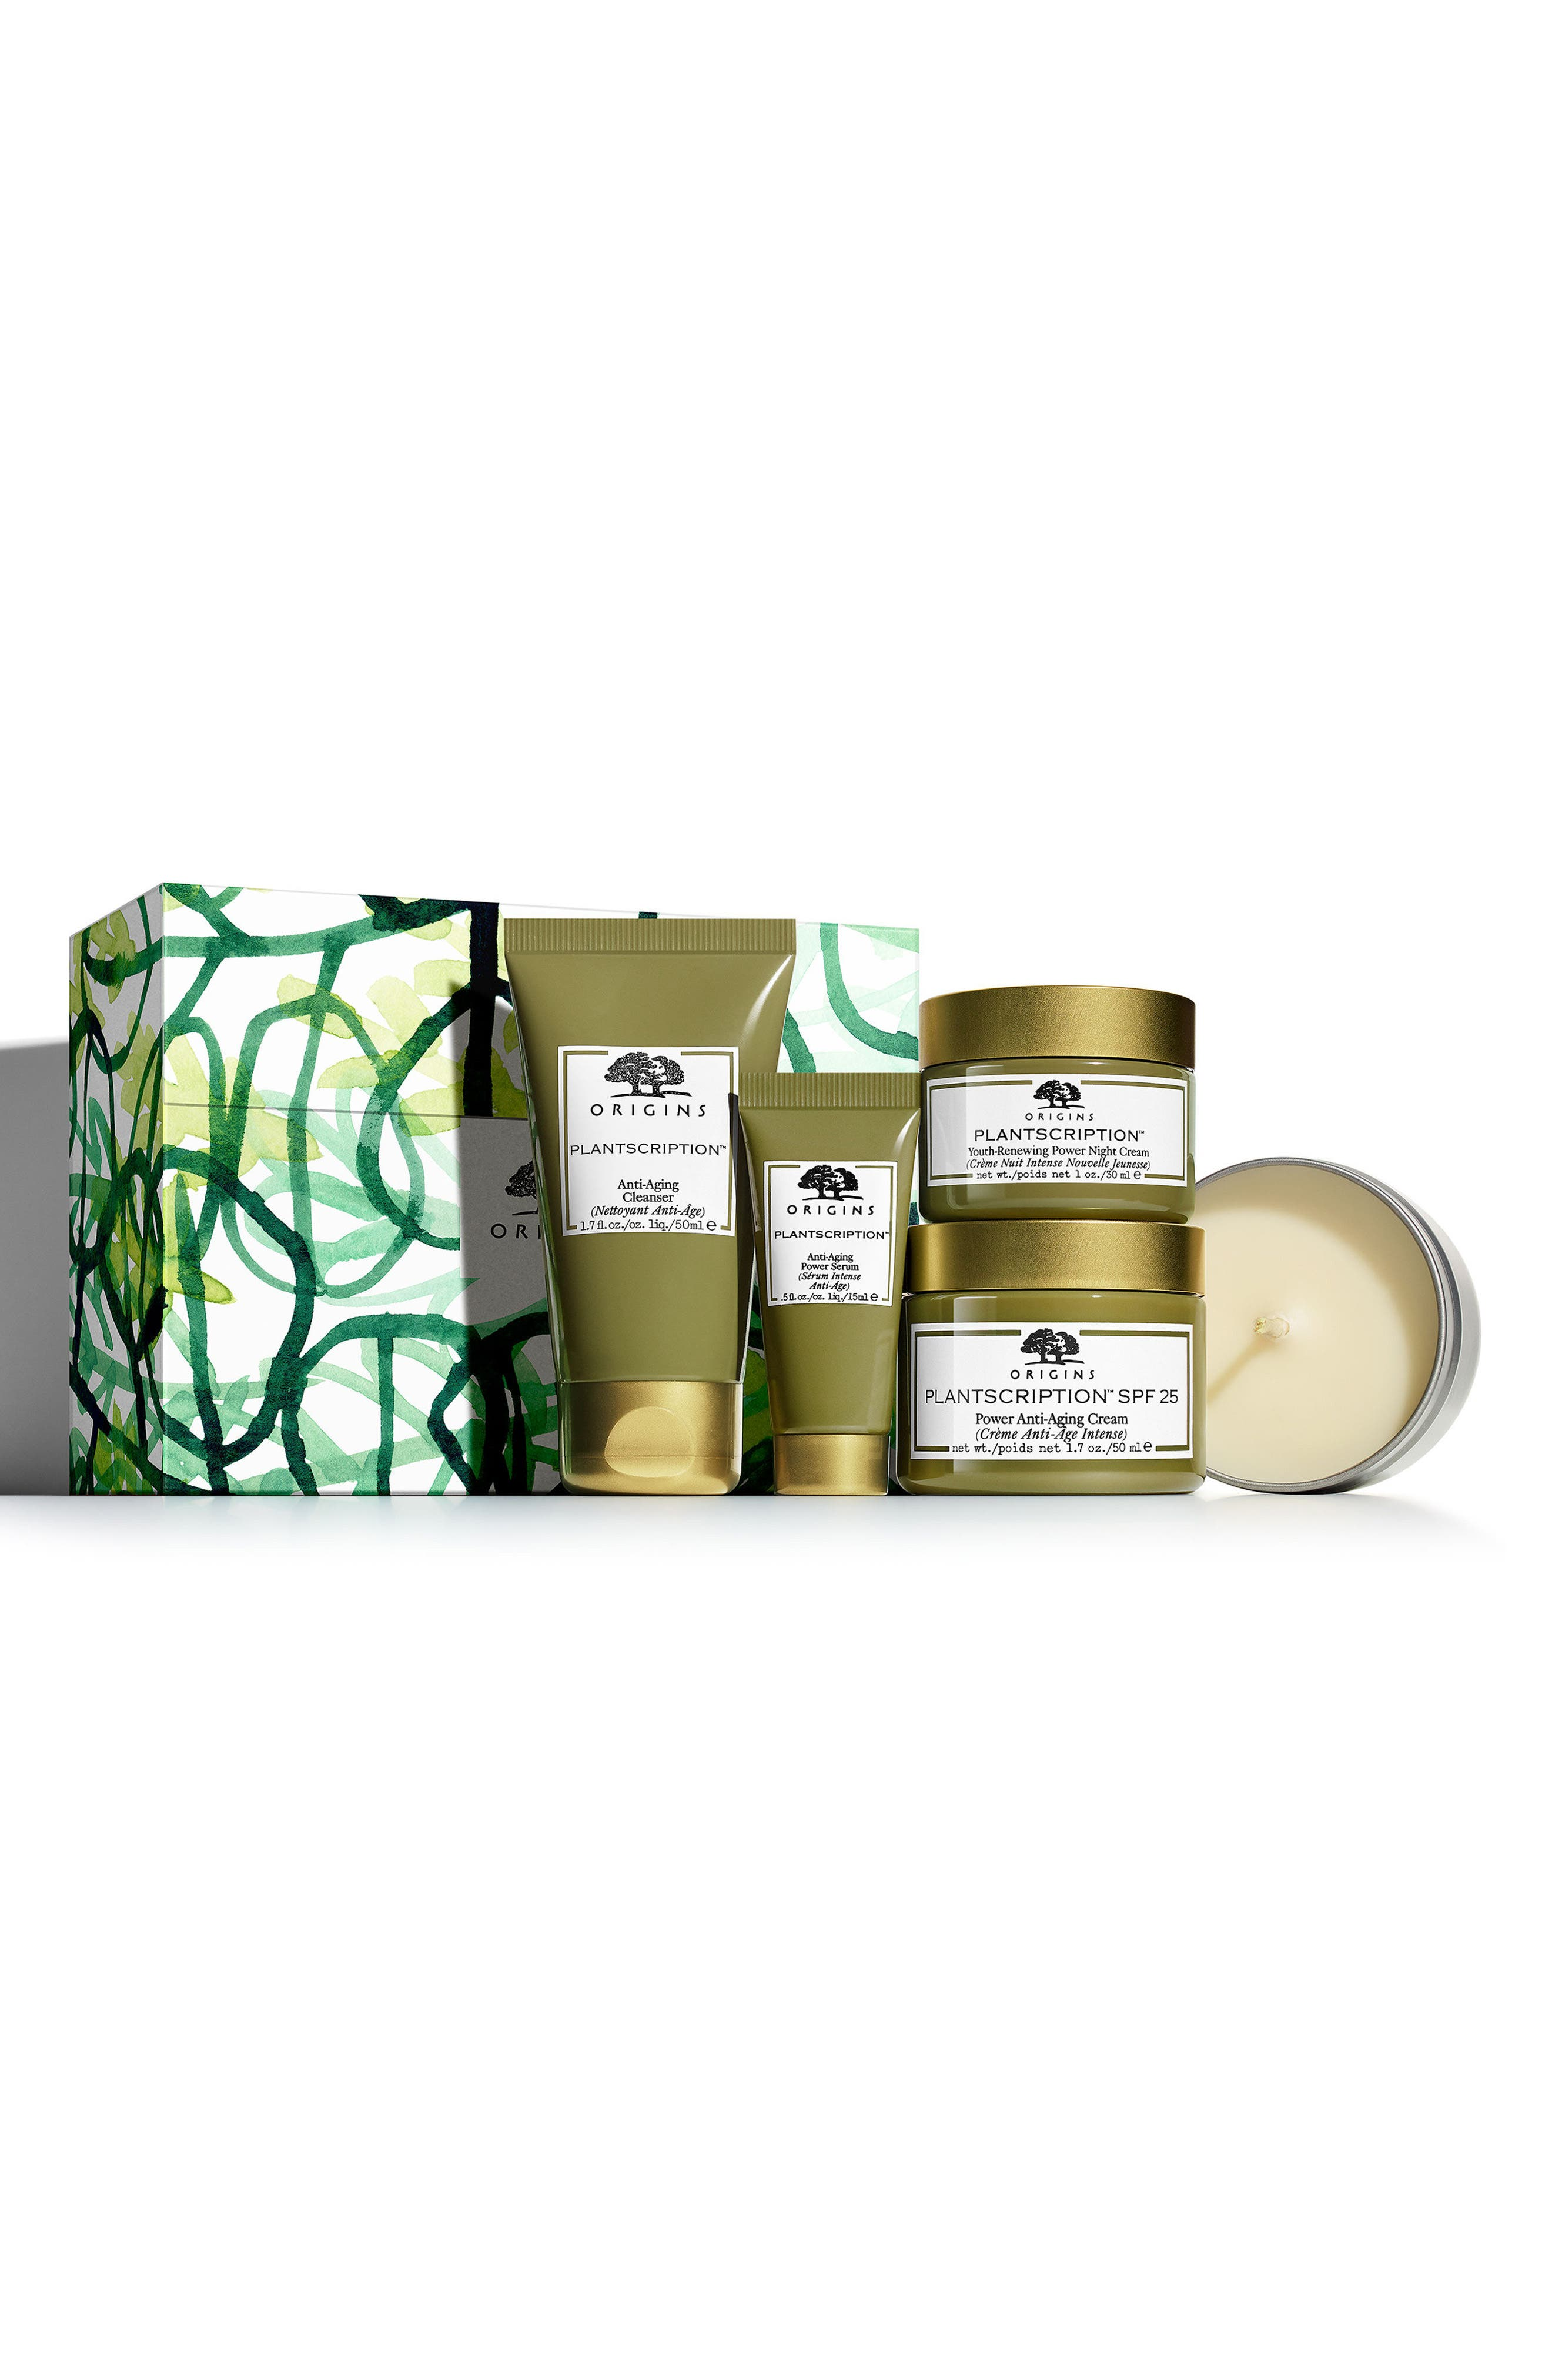 Origins Plantscription™ Set ($148 Value)